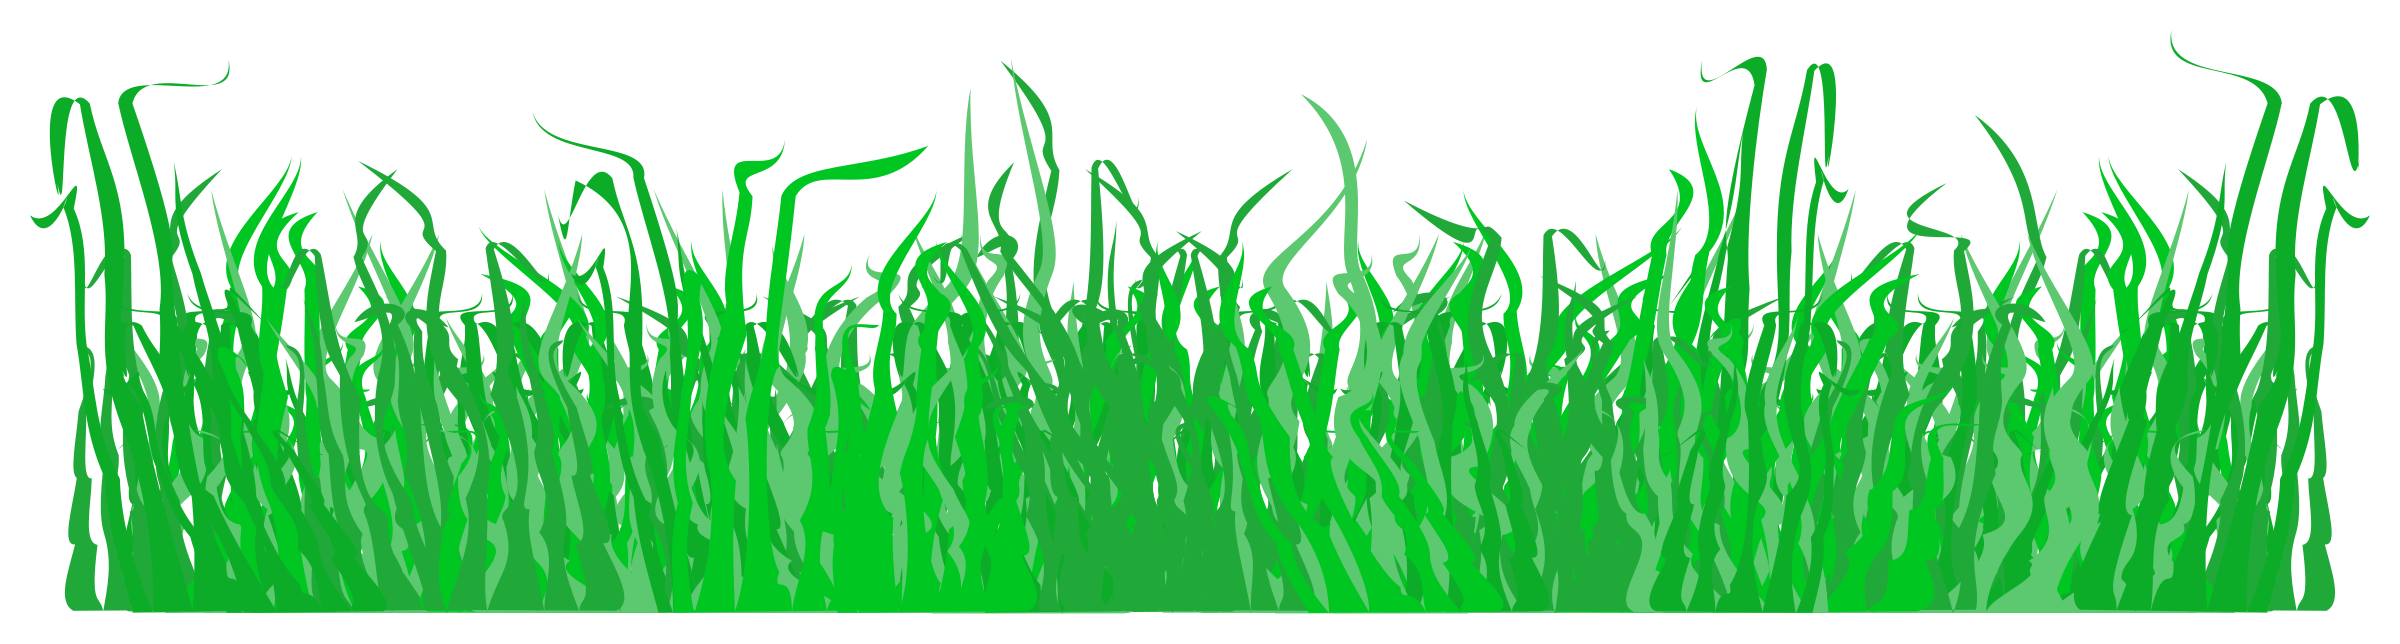 For a lawn big. Clipart grass illustration